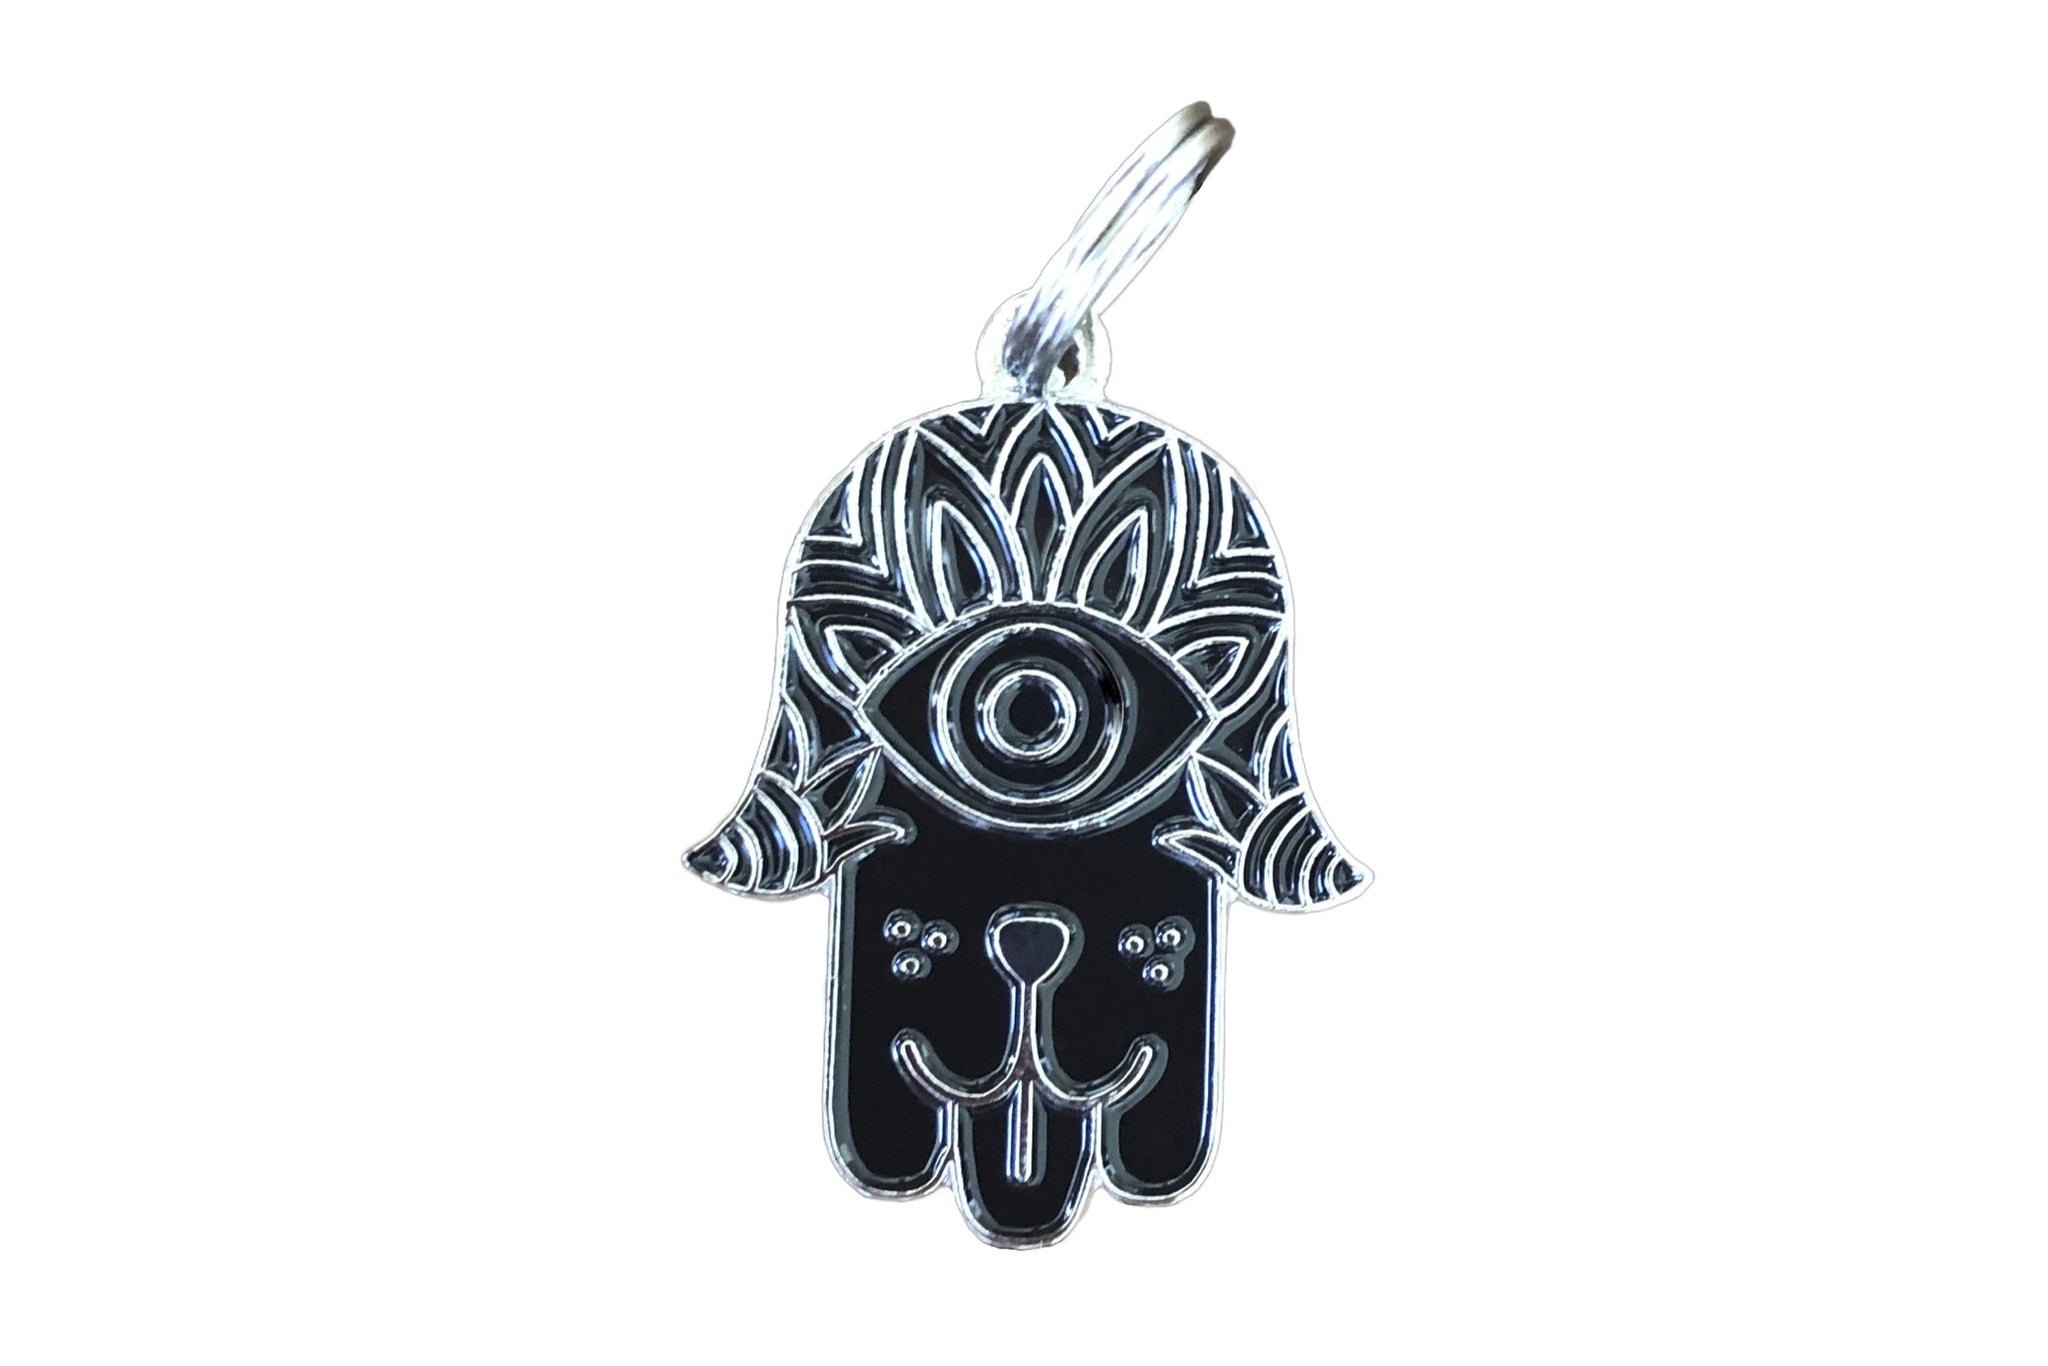 Pet ID tag made of silver plated brass and black enamel designs like a hamsa with a dog face on it sticking out its tongue.